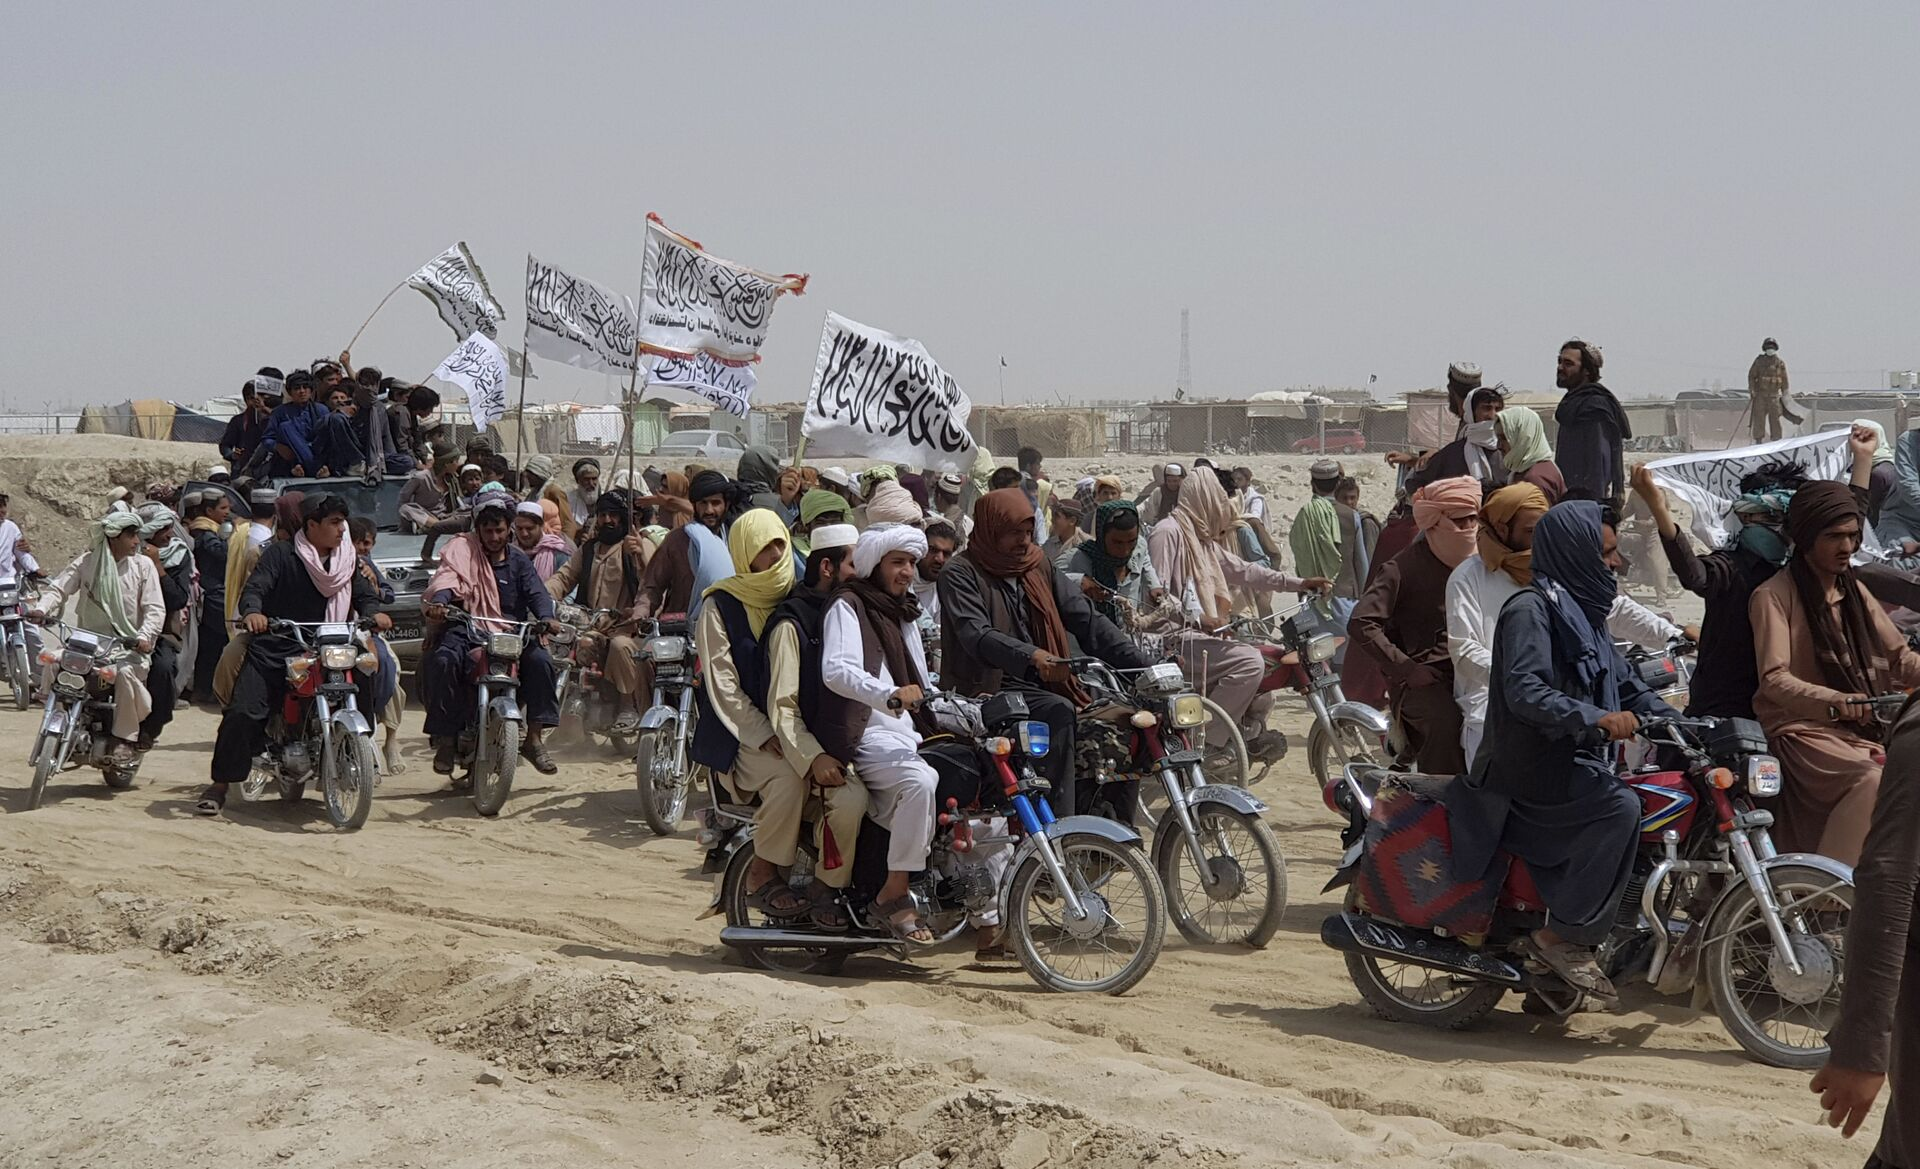 Supporters of the Taliban carry the Taliban's signature white flags in the Afghan-Pakistan border town of Chaman, Pakistan, Wednesday, July 14, 2021 - Sputnik International, 1920, 07.09.2021